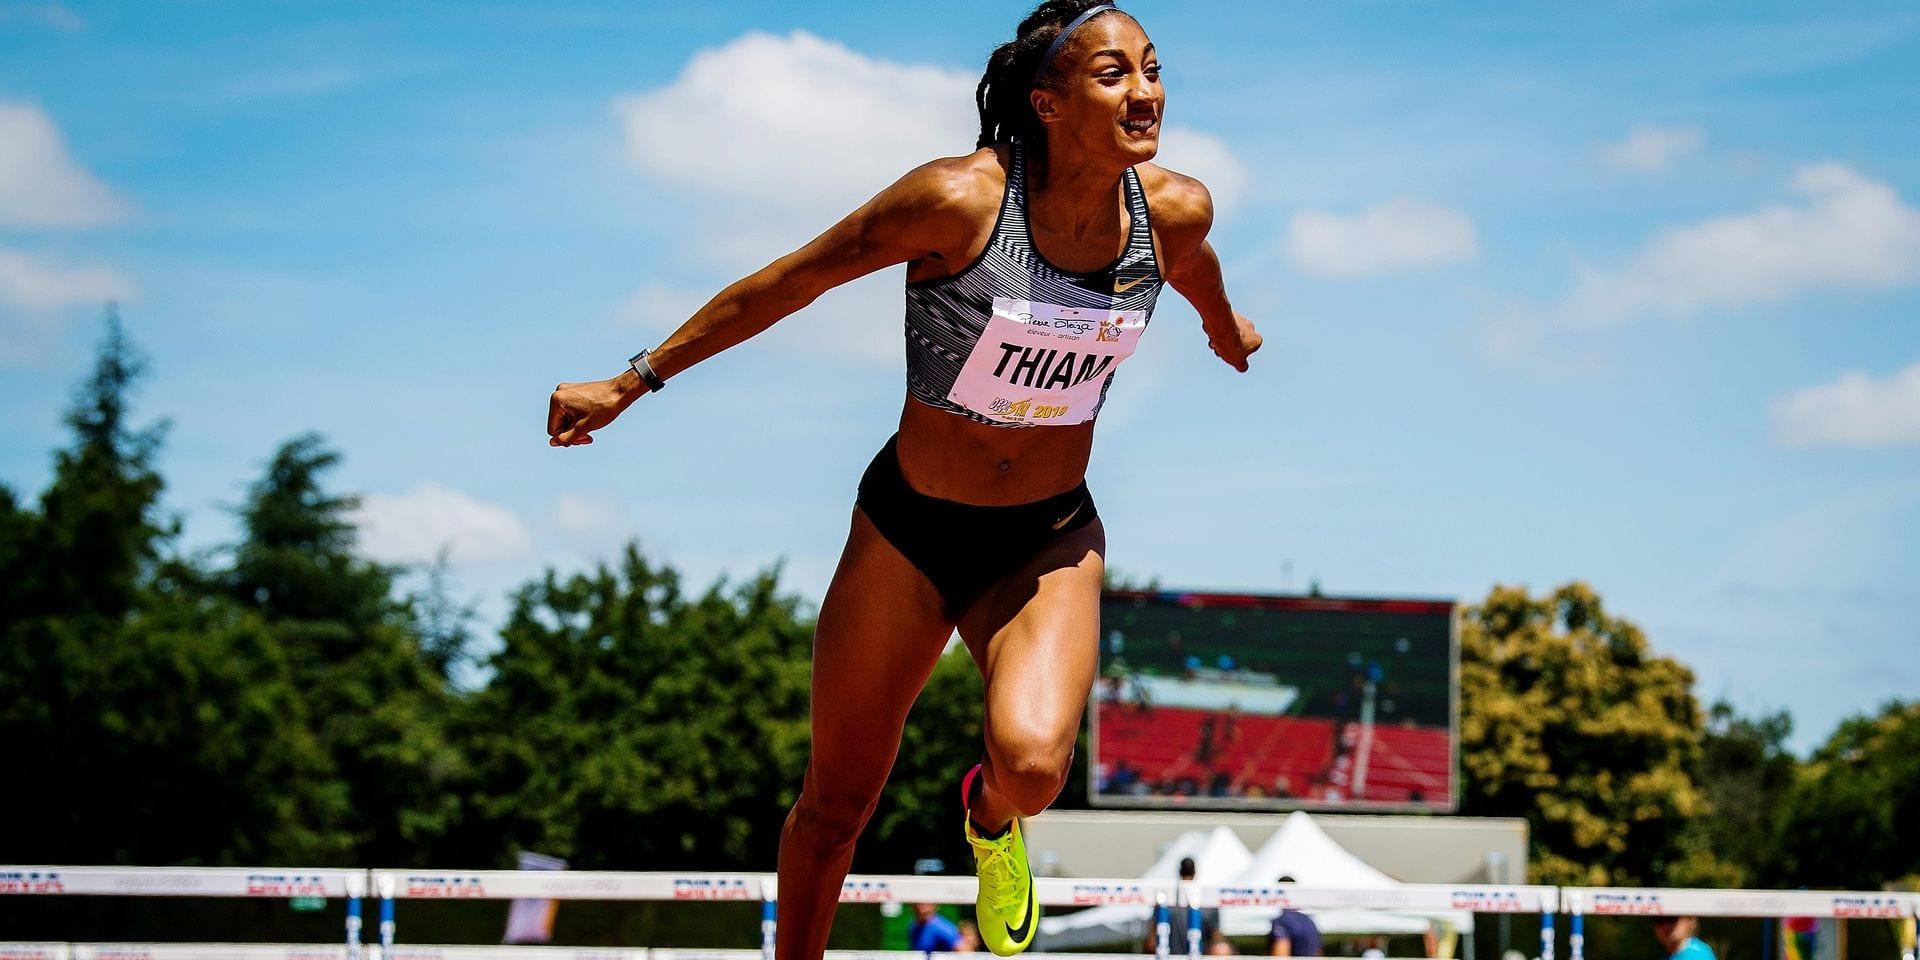 Belgian Nafissatou Nafi Thiam pictured in action during 100m hurdles race the first day of heptathlon competition at the DecaStar athletics event in Talence, France, Saturday 22 June 2019. BELGA PHOTO JASPER JACOBS